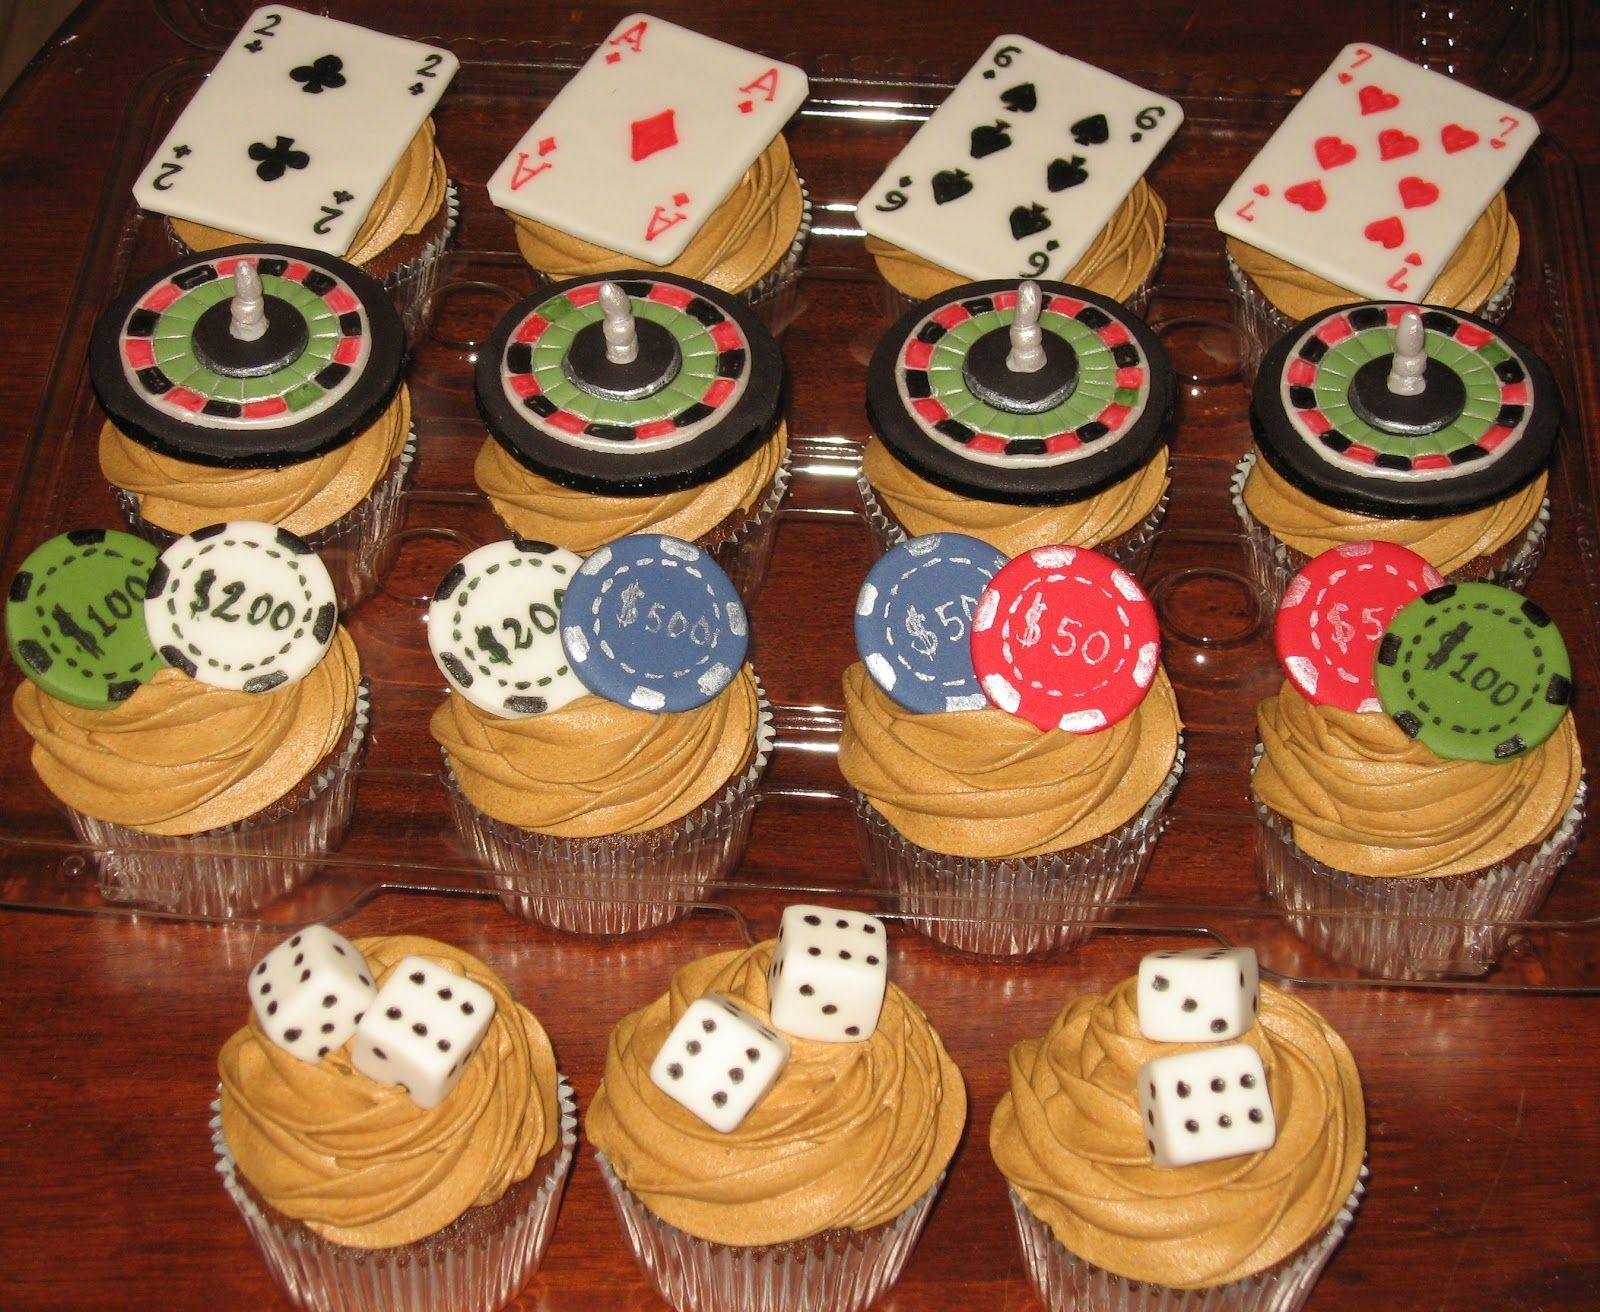 Cool Casino Cup Cakes For Blog 1 6001 312 Pixels With Images Funny Birthday Cards Online Inifofree Goldxyz